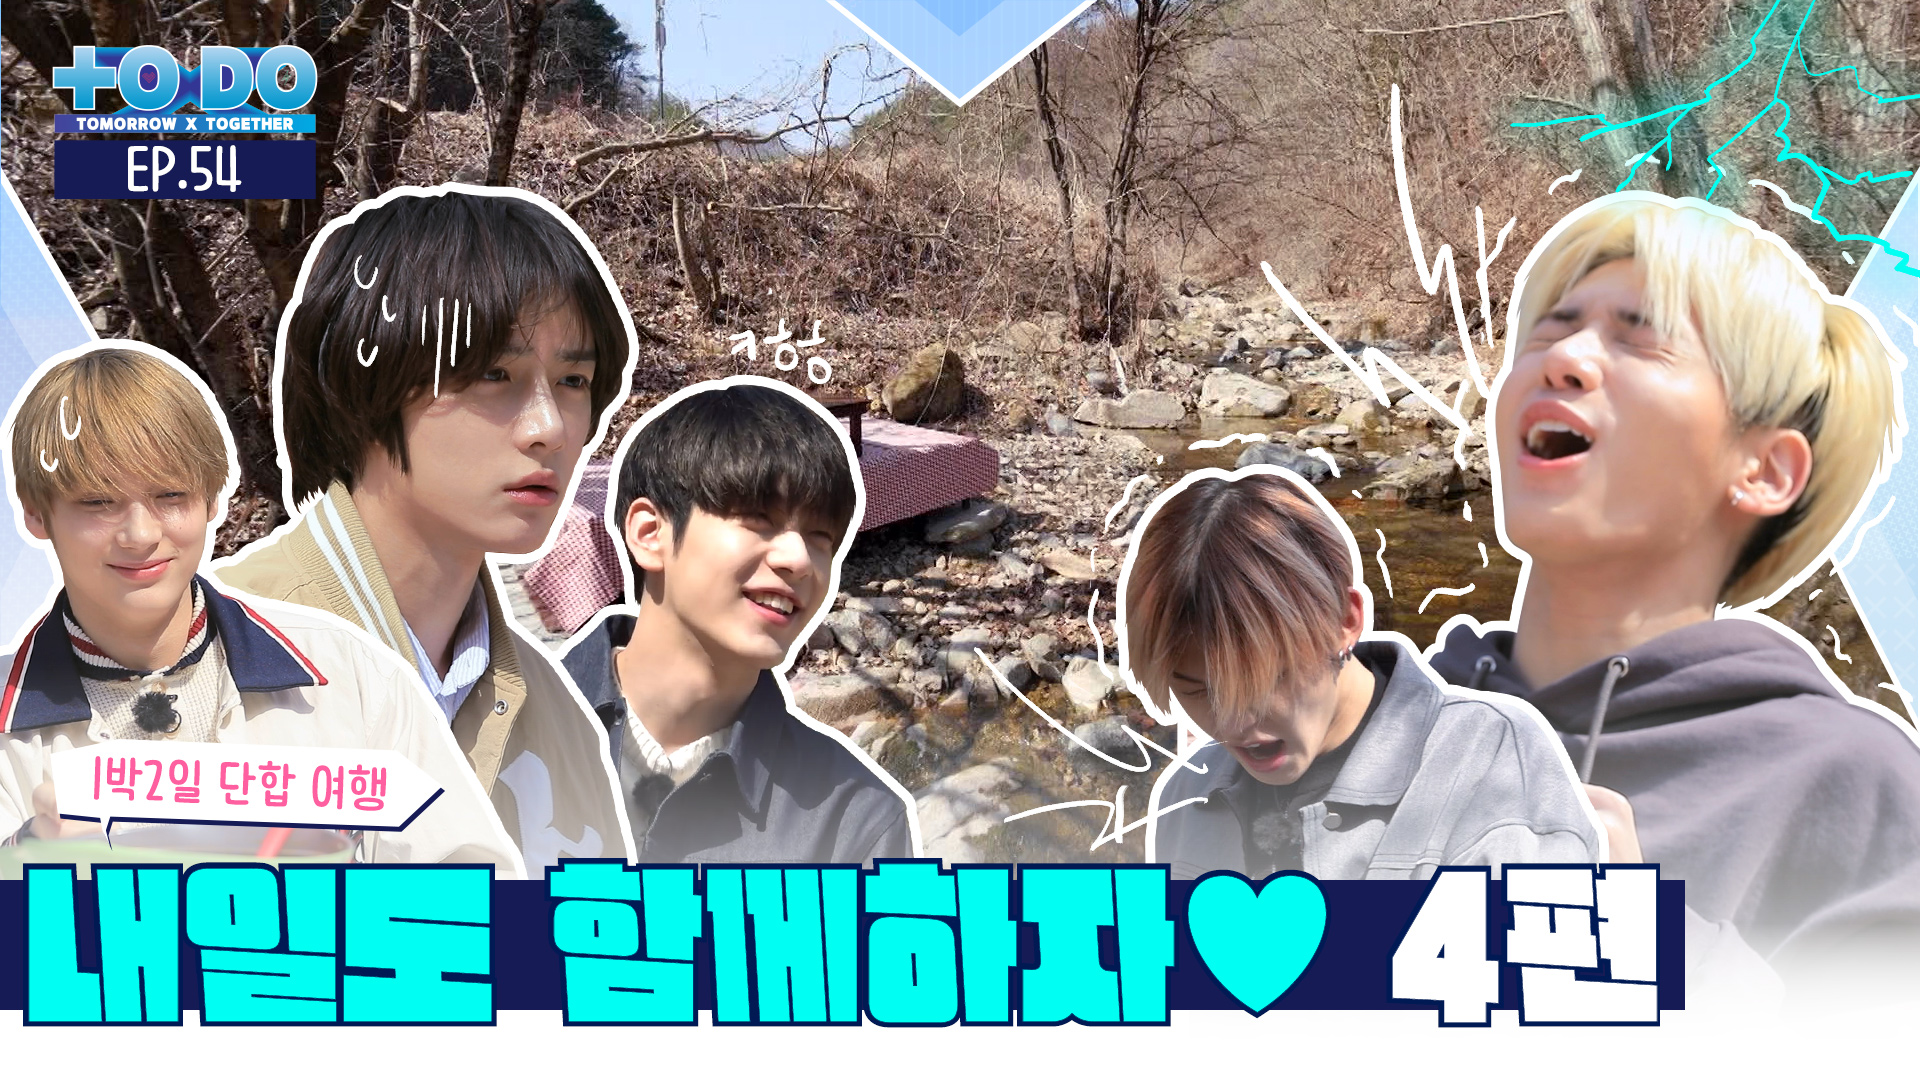 TO DO X TOMORROW X TOGETHER - EP.54